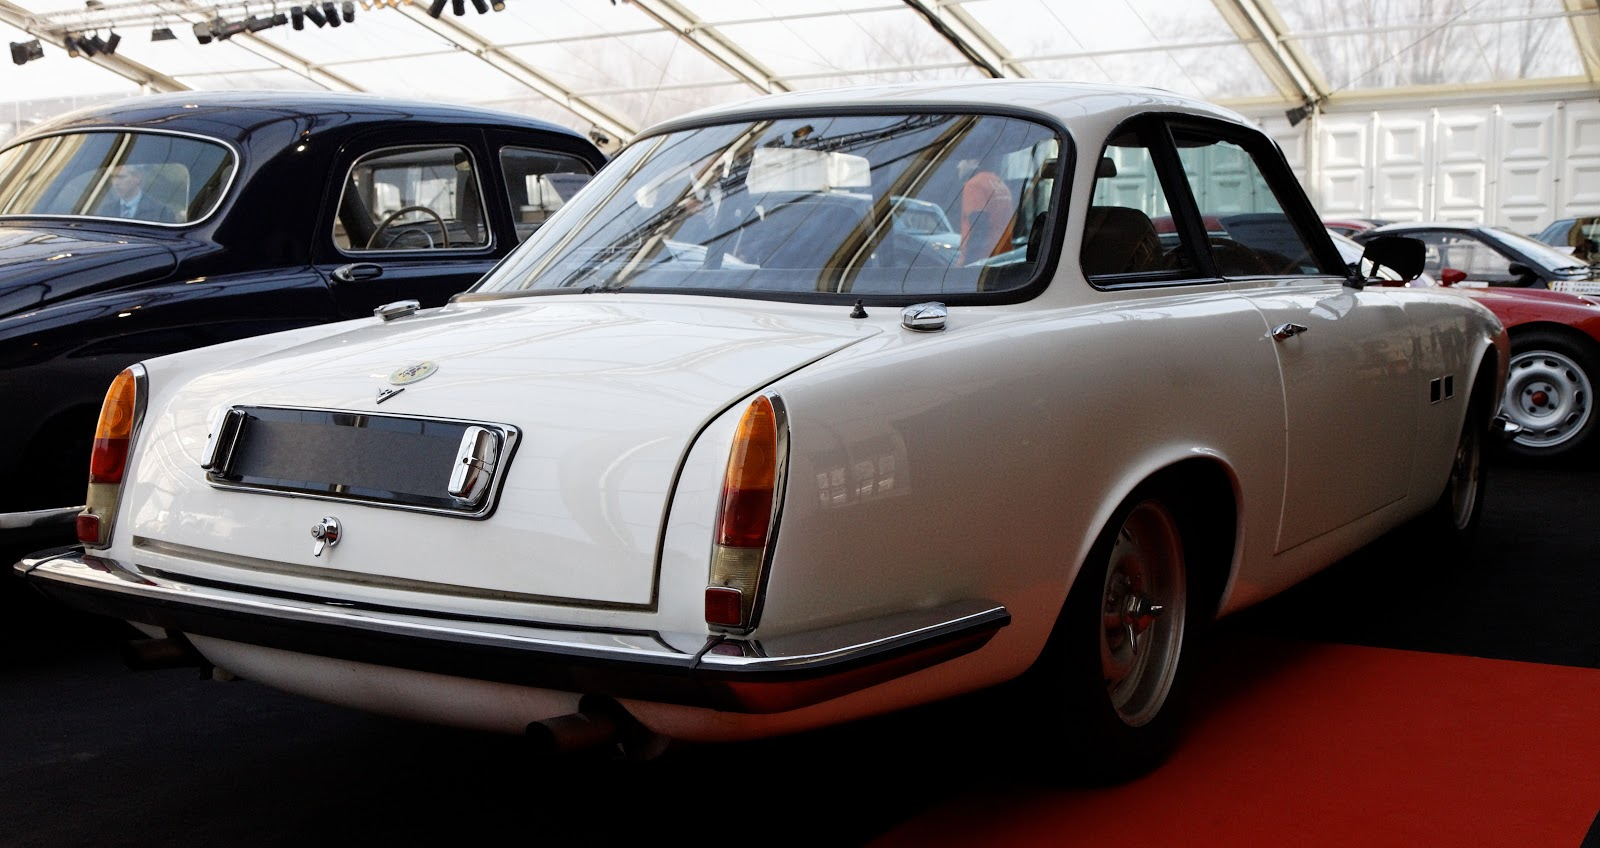 Only 100 GK1s were produced from 1964 through 1968 because the Gordon-Keeble ...